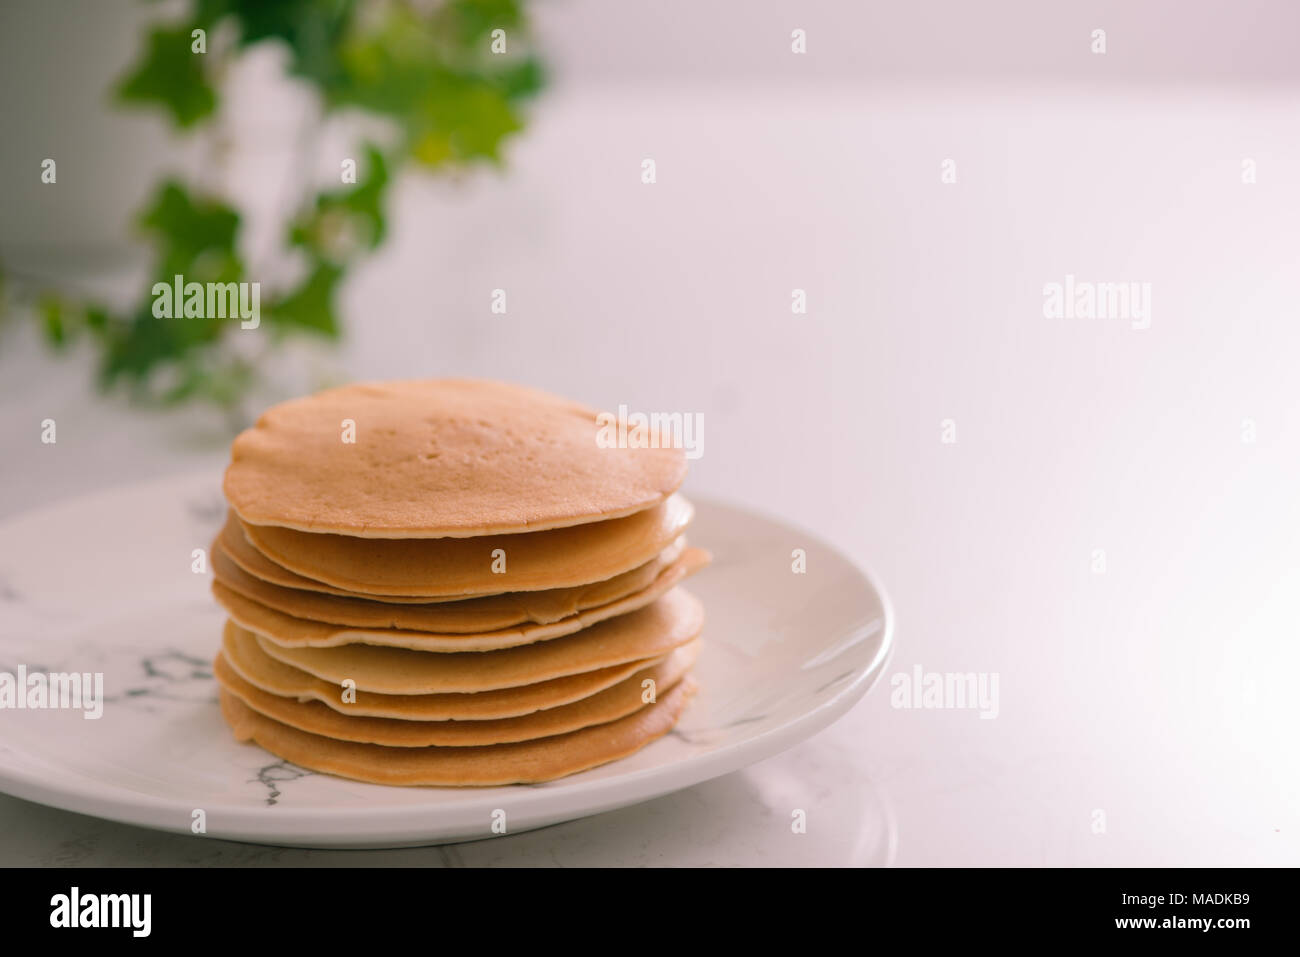 Cooking for breakfast. Delicious homemade pancakes on a plate - Stock Image